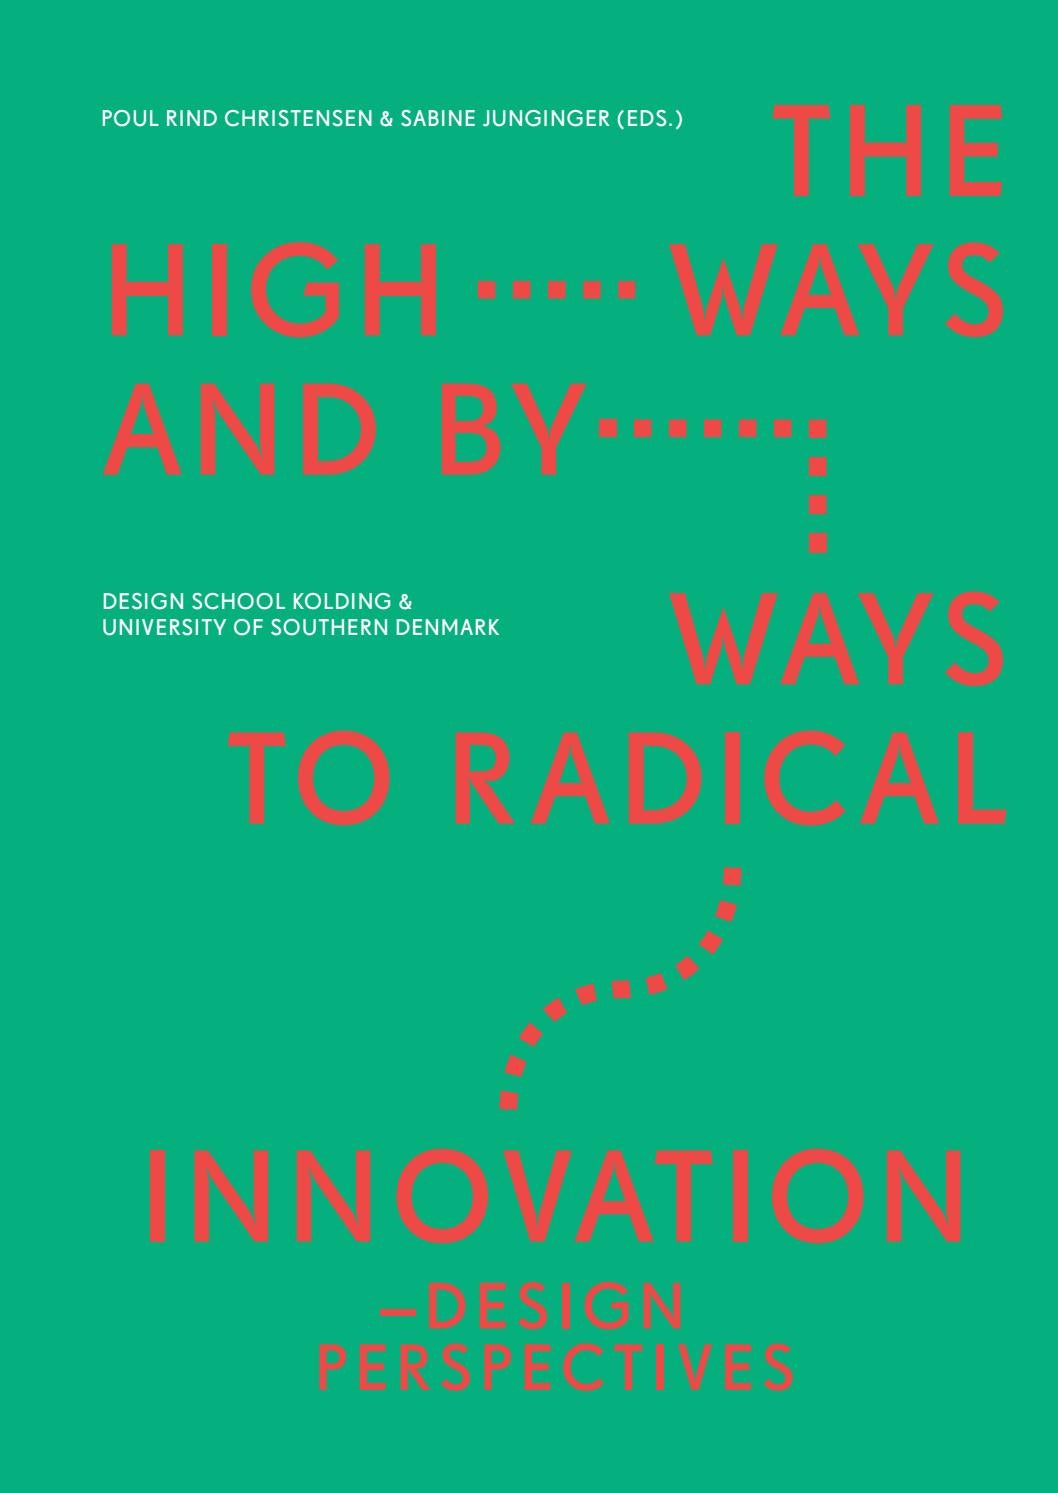 The Highways and Byways to Radical Innovation by Designskolen